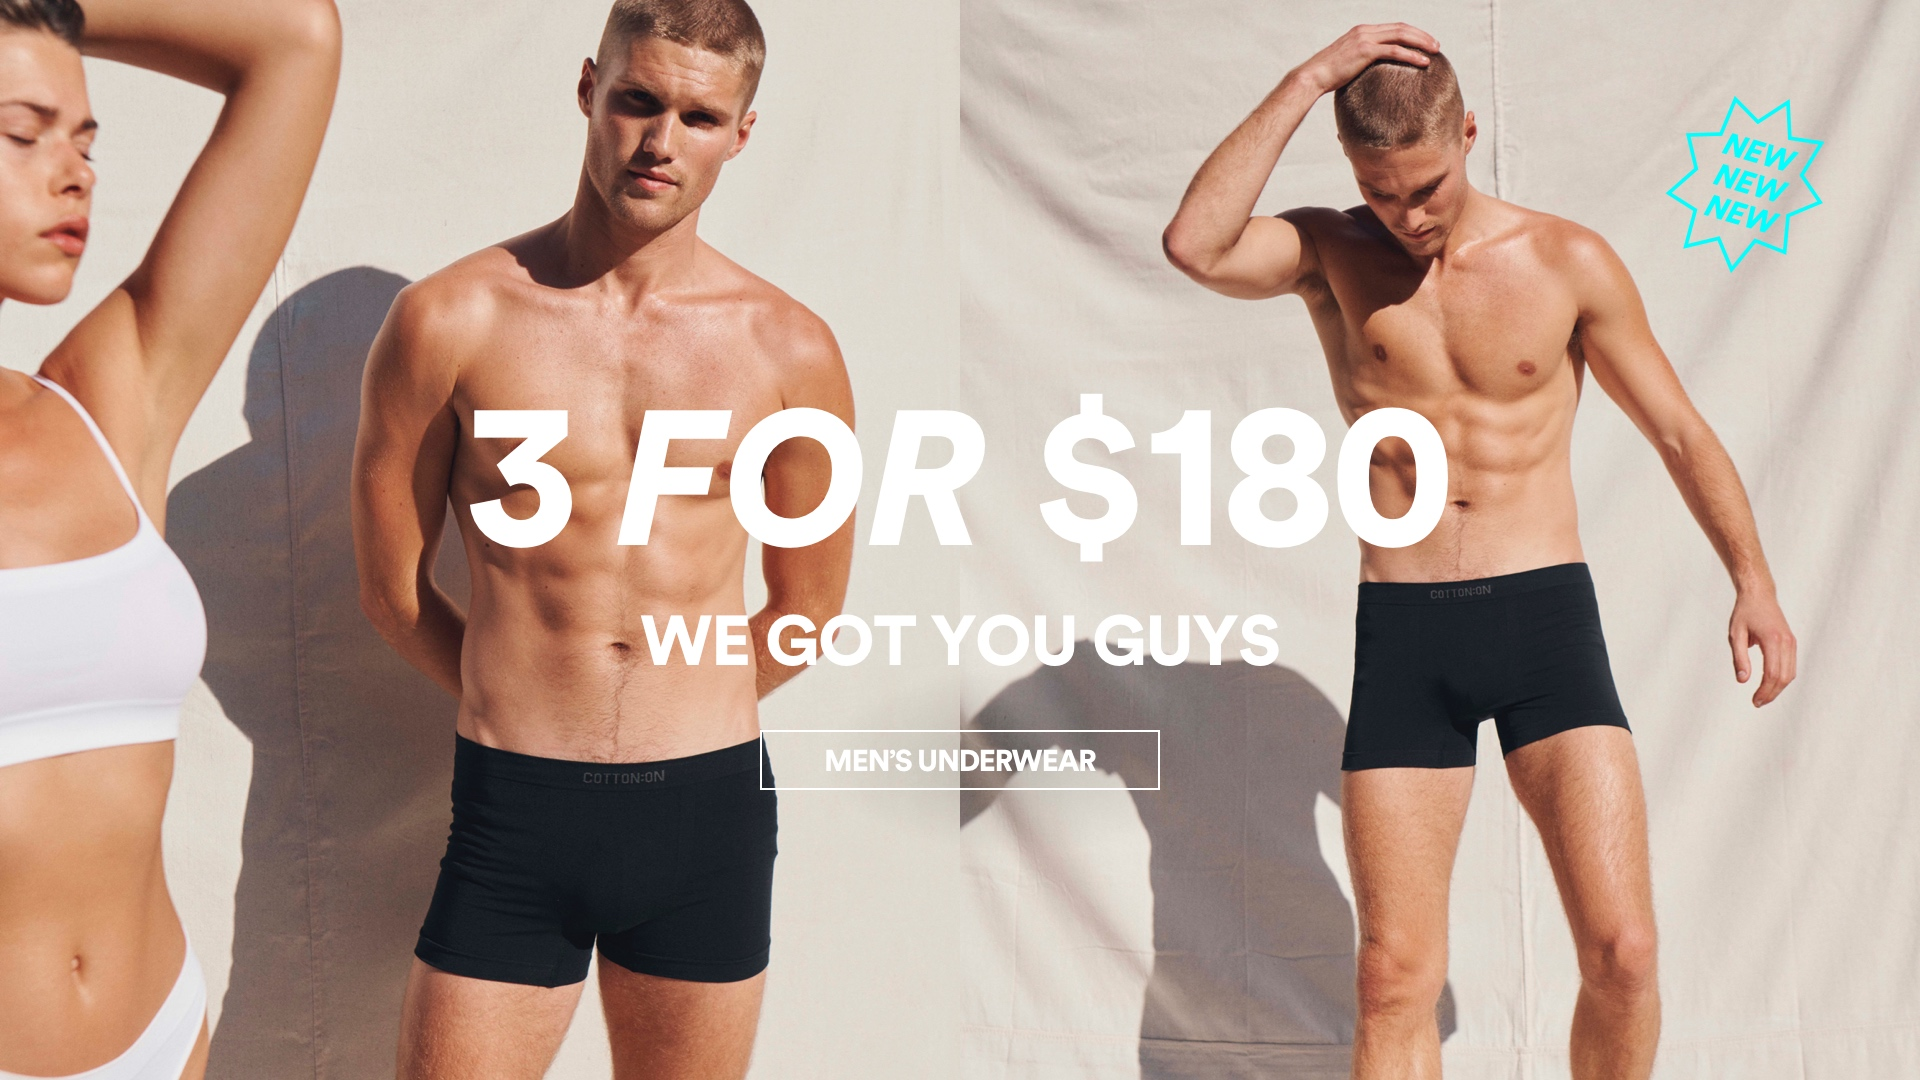 Men's Trunks 3 for $180. Click to shop.